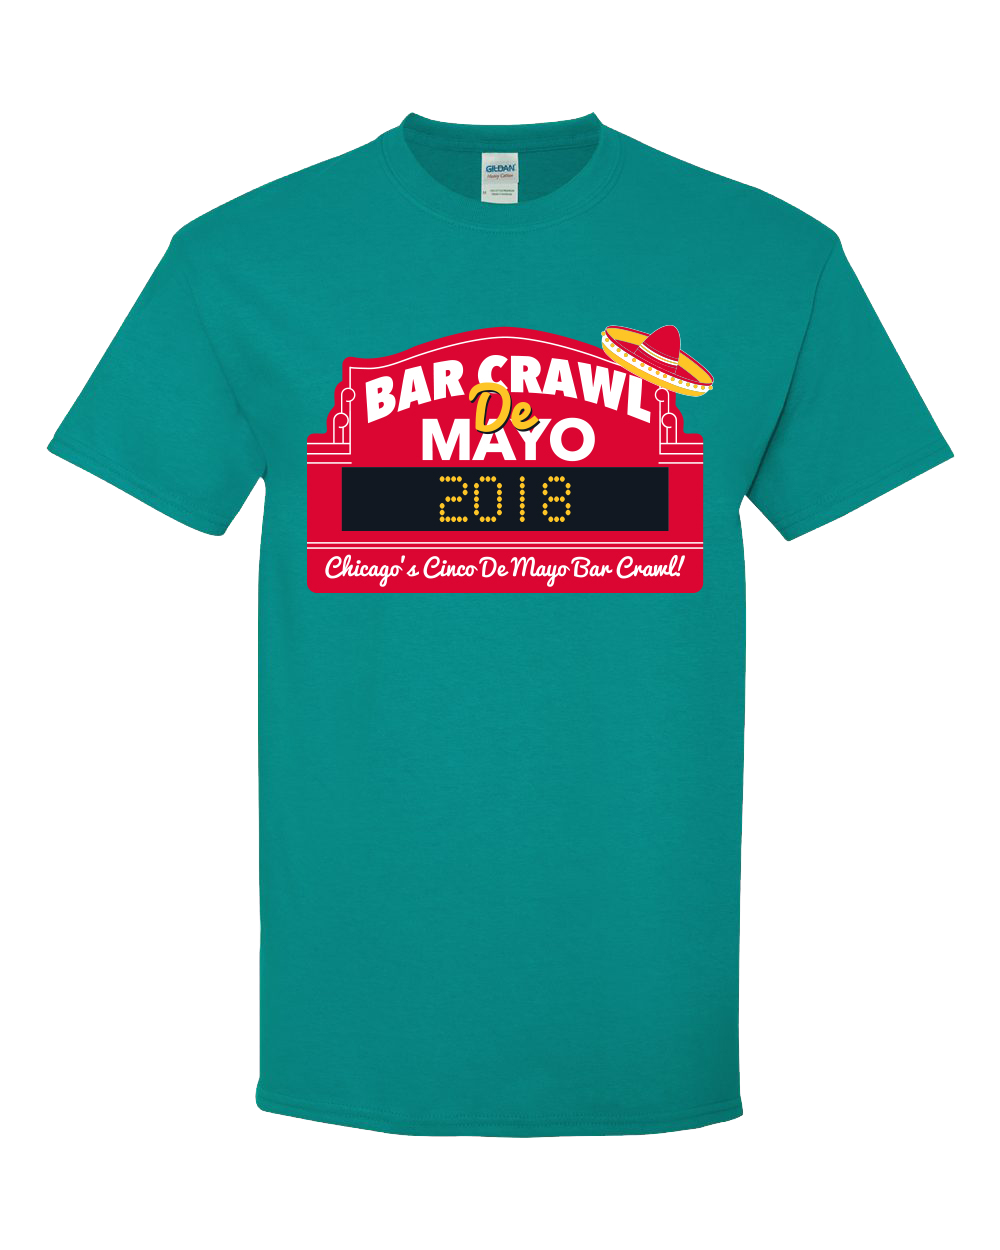 Bar Crawl de Mayo T-Shirt